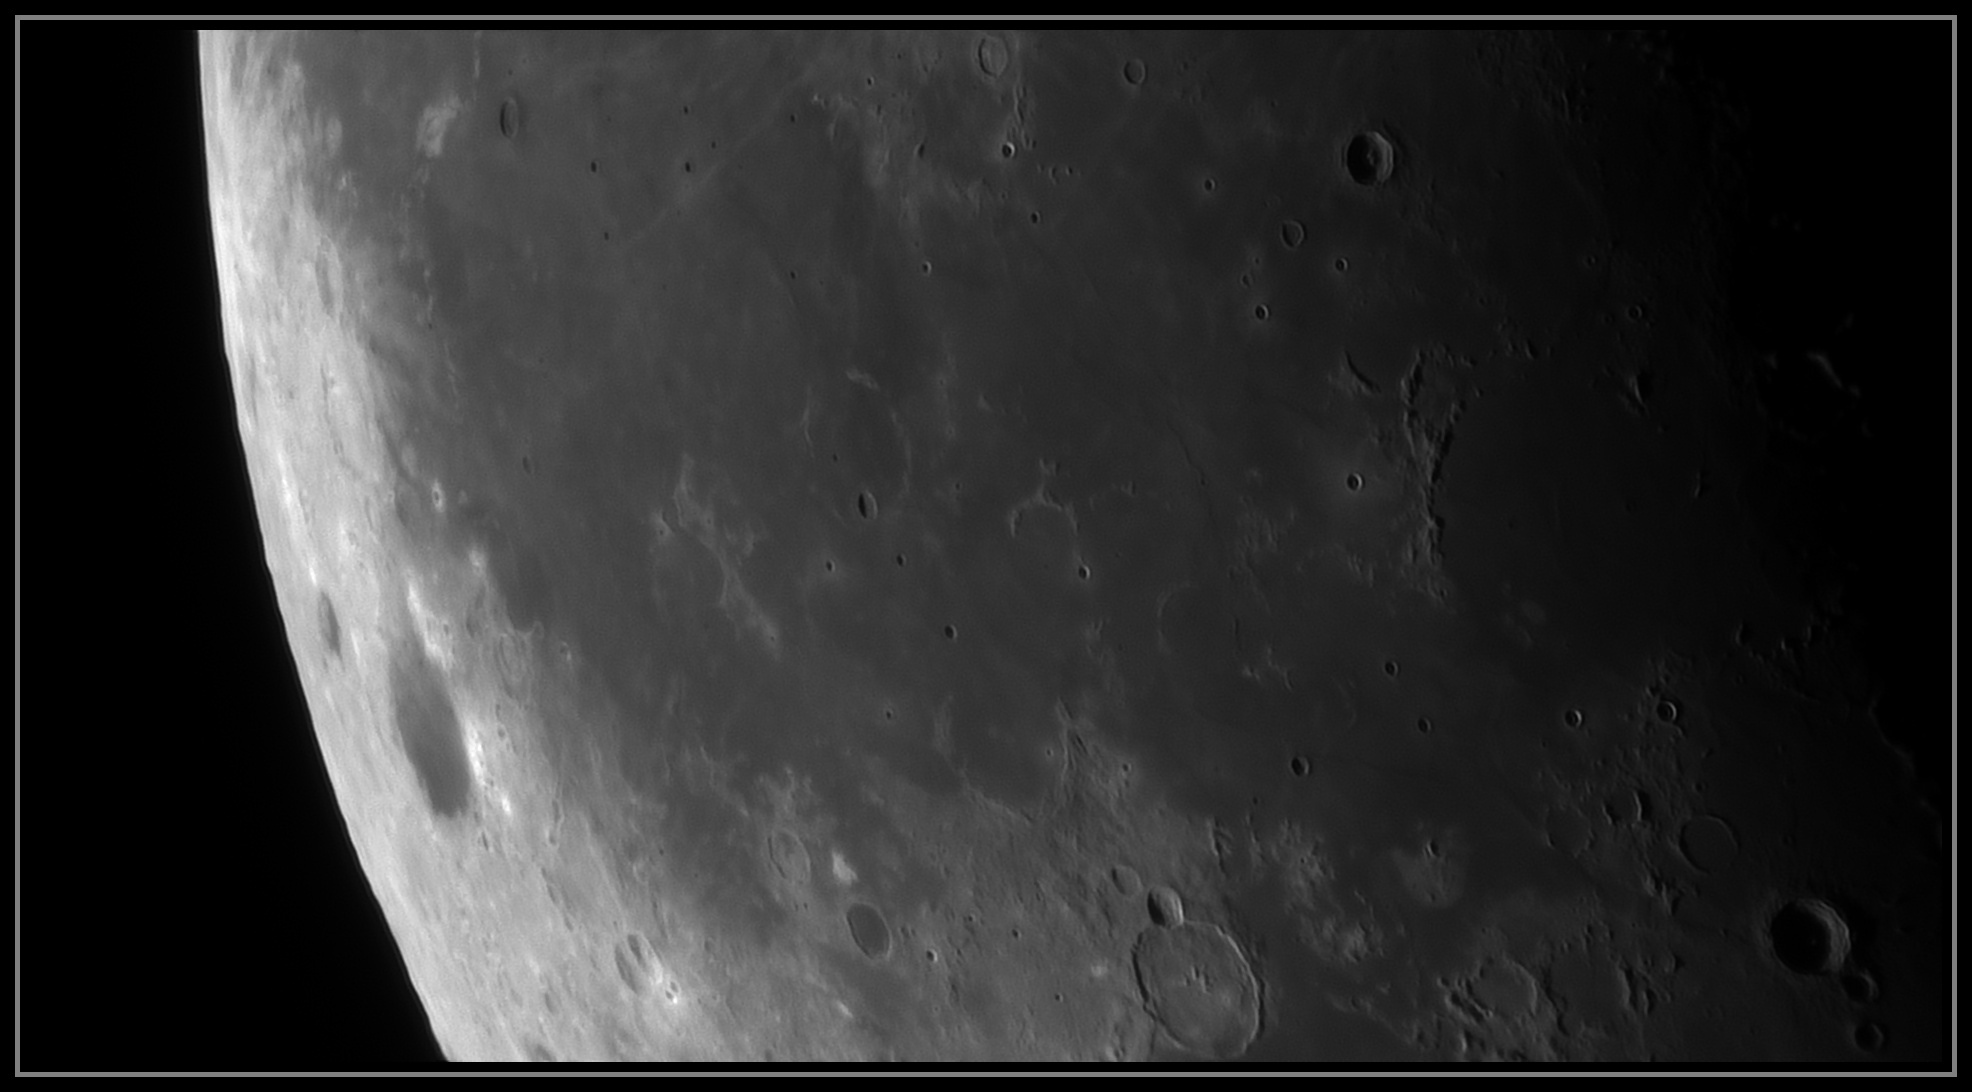 5e28a16fe9131_Moon_074722_190120_ZWOASI290MM_IR_742nm_AS_P25_lapl6_ap835.jpg.fbcbd62e8823c0c35d2a5bb0518612ee.jpg